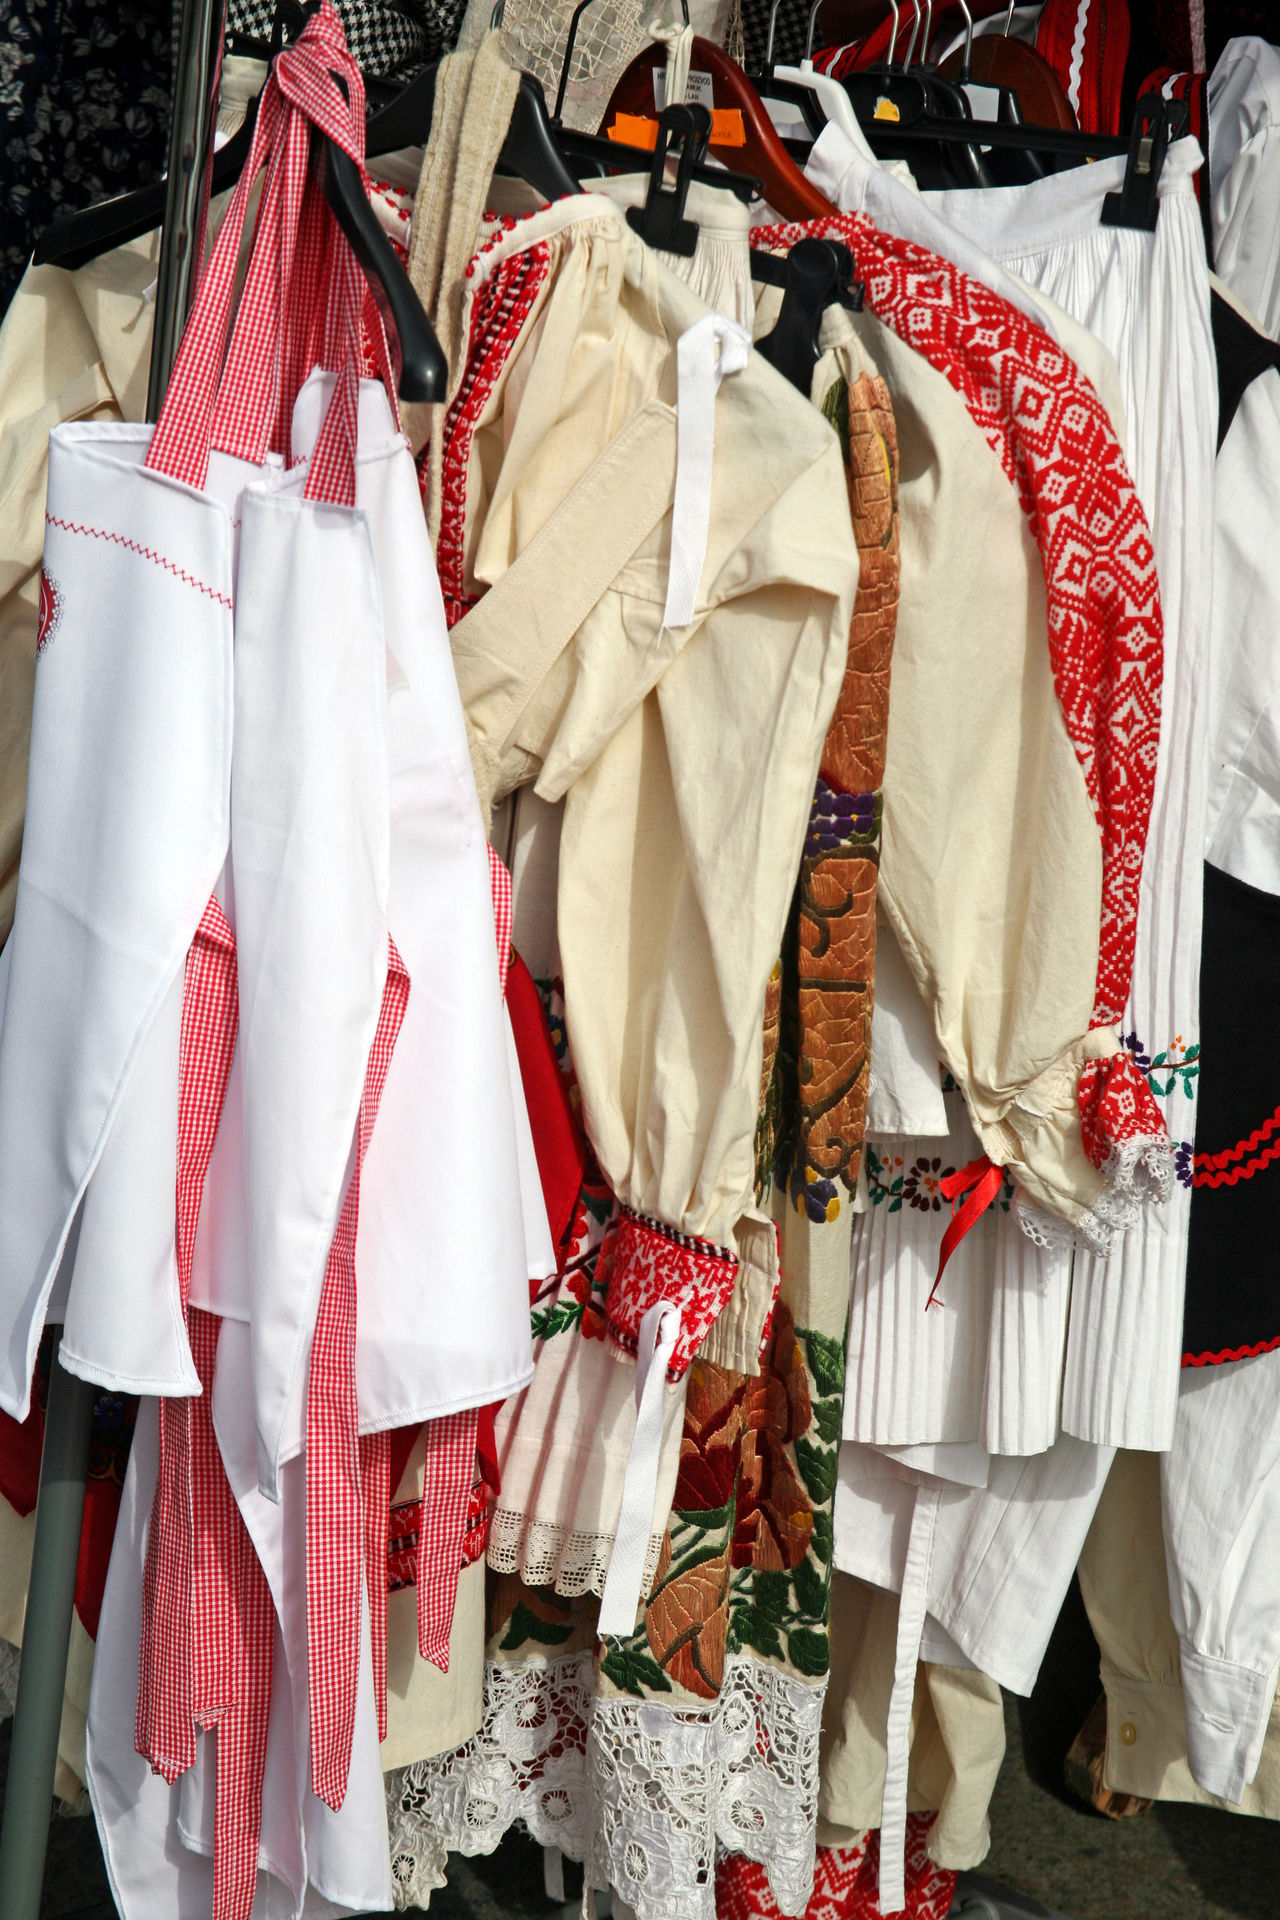 'Home-made is home-made',fair,9,traditional costumes,Zagreb 2016. 'home-made Is Home-made Choice Cloth Clothing Costumes Craftmanship Croatia Eu Fair Hand-made Hanging Outdoors Textile Tradition Traditional Costumes Variation Zagreb